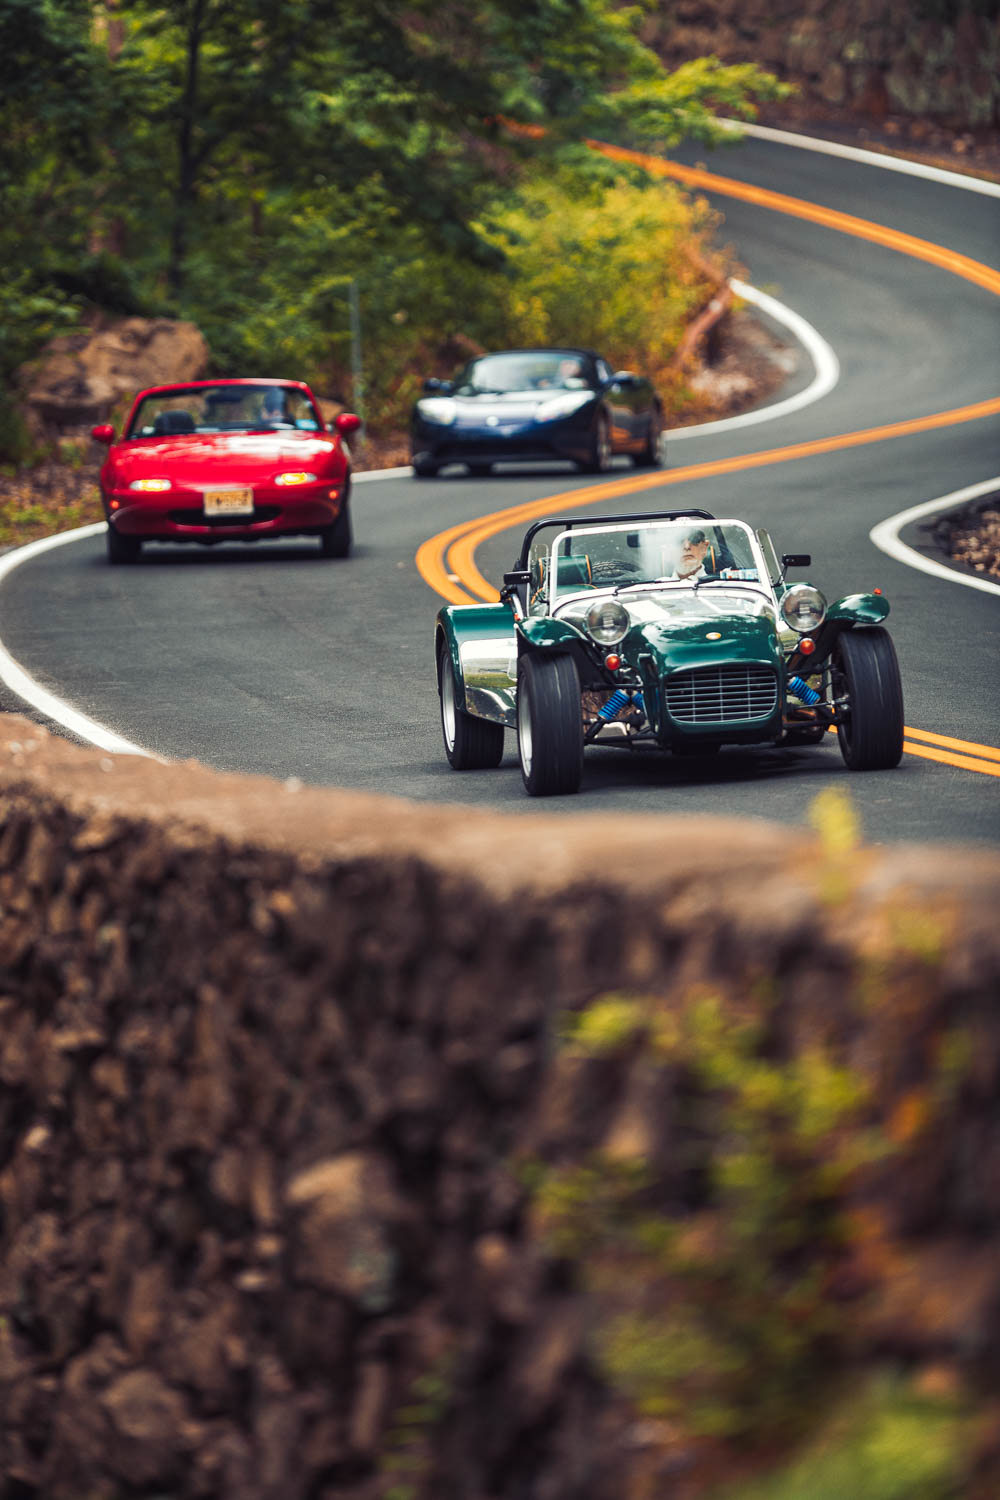 Much like the original Lotus 7, Elan, and Elise that inspired them, today's Caterham Seven, Mazda Miata, and Tesla roadster excel when the going gets twisty.